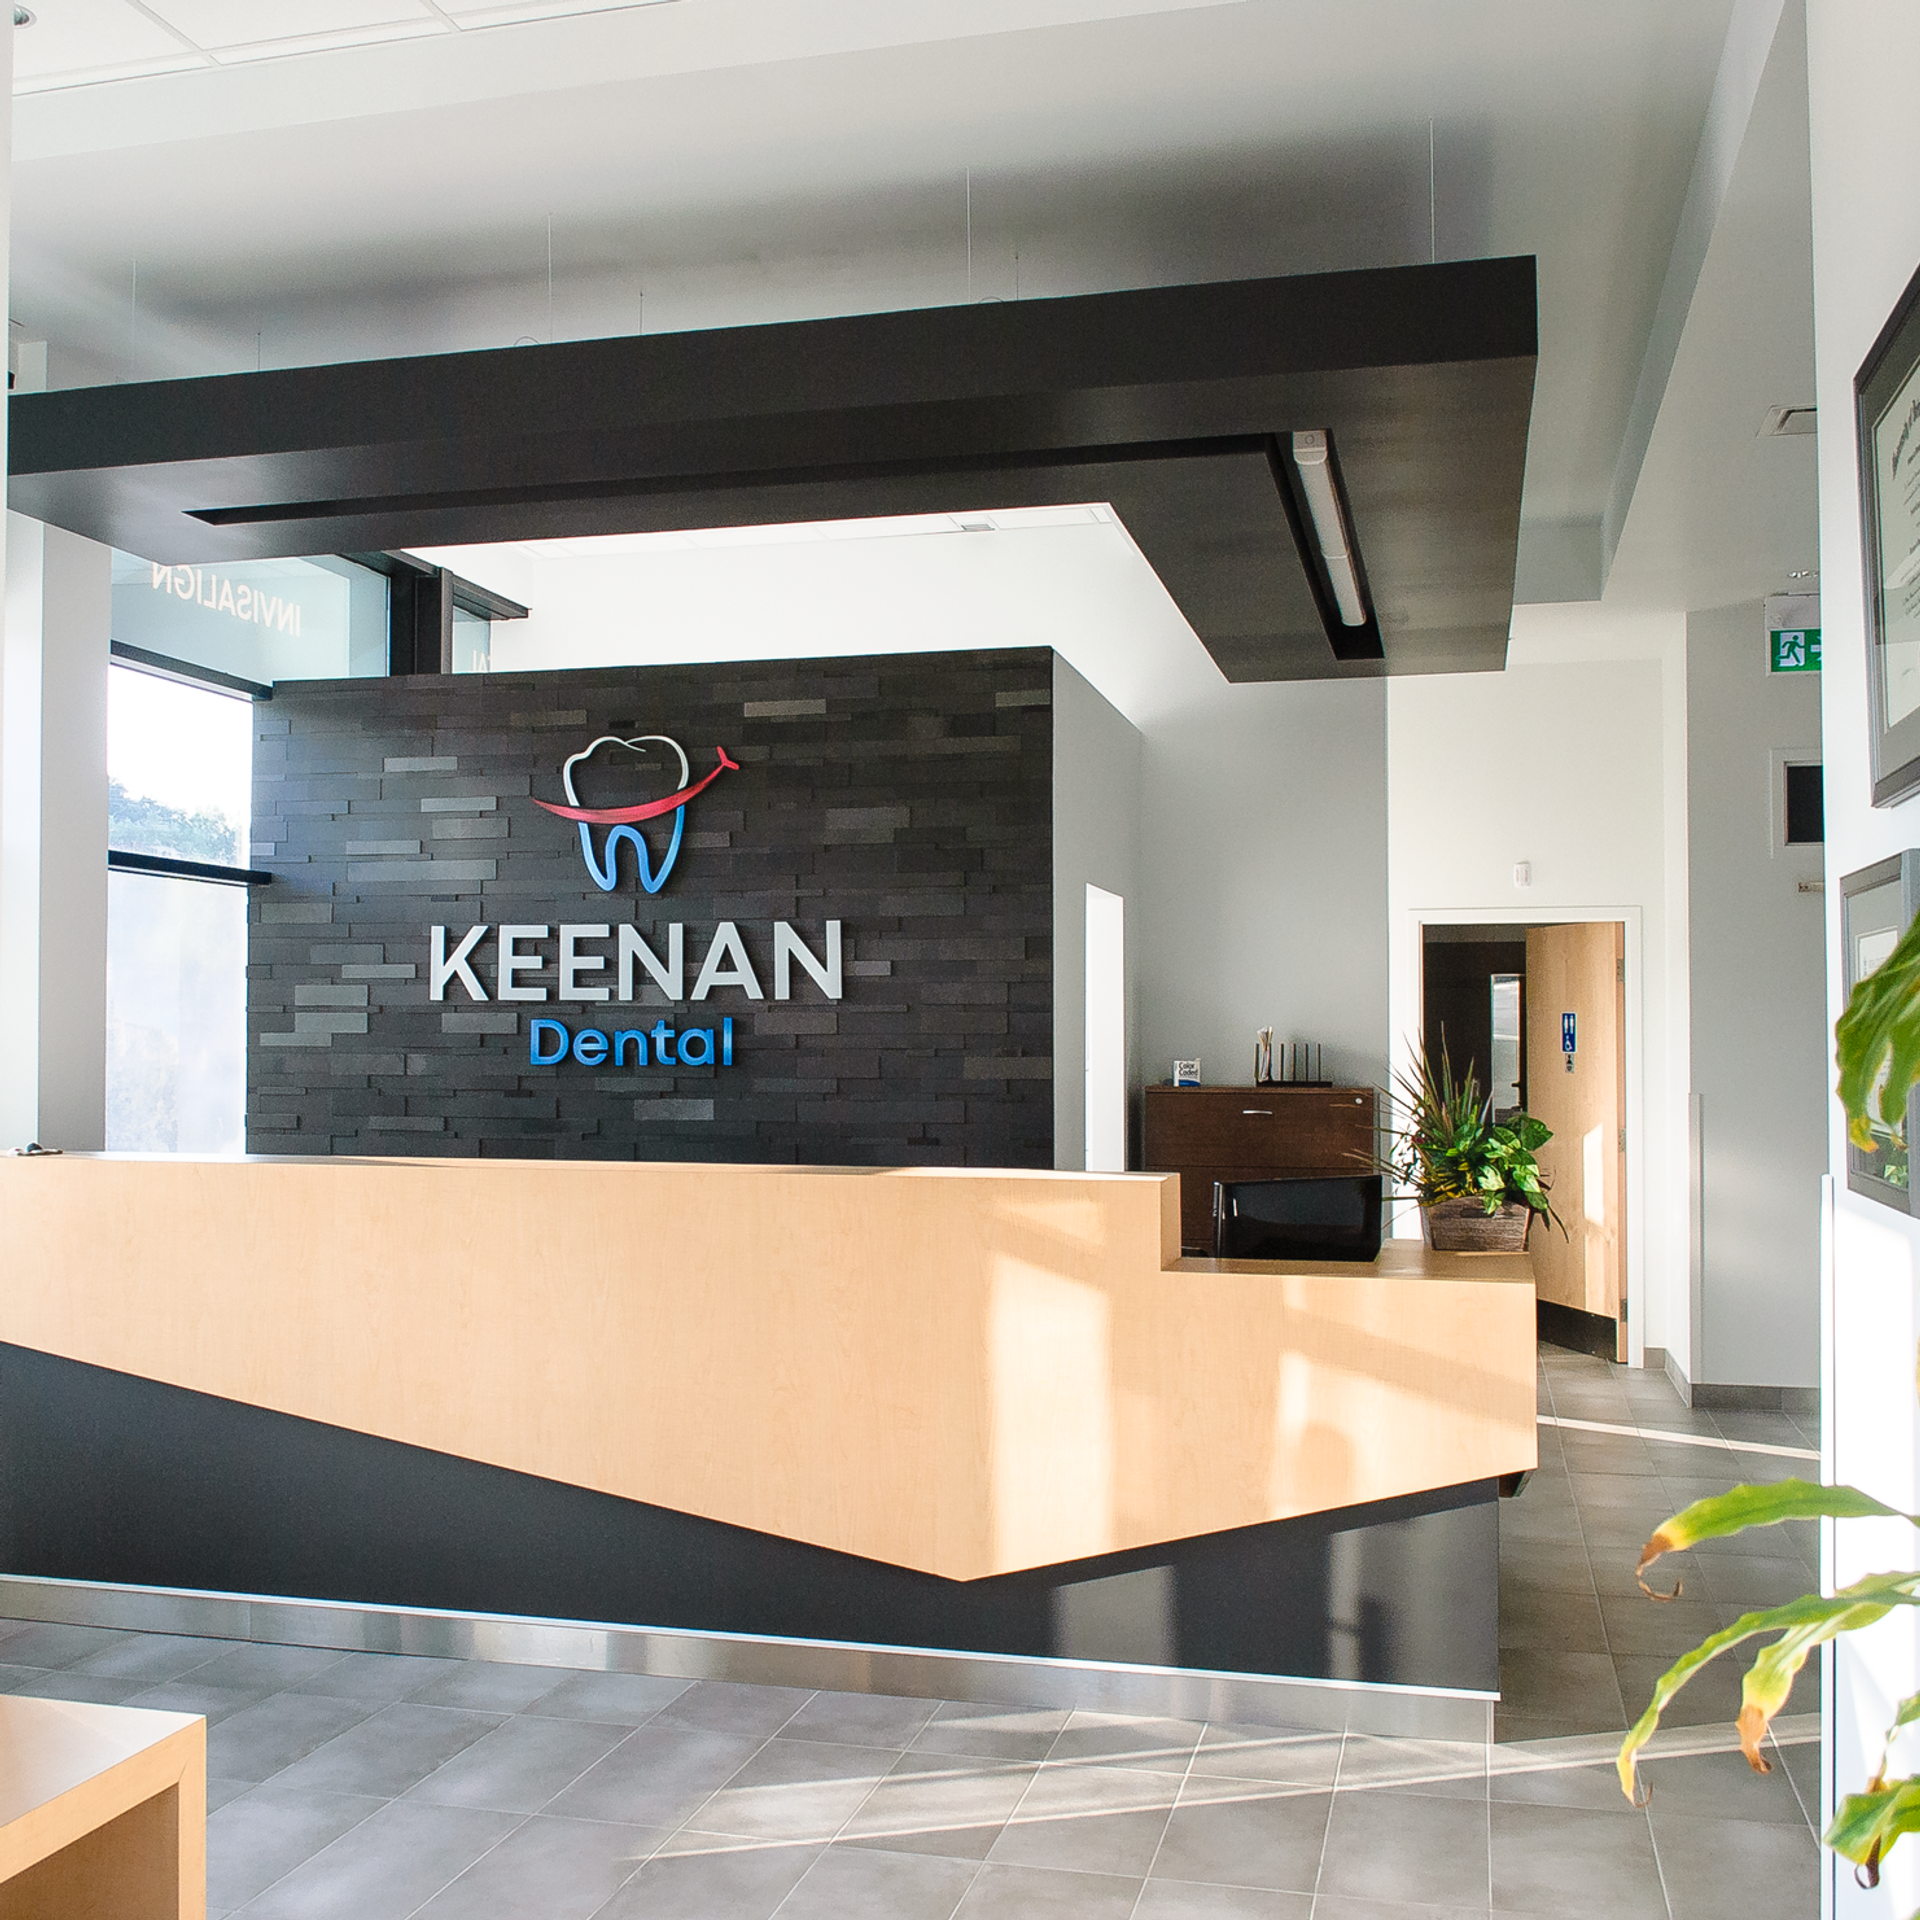 Keenan Dental